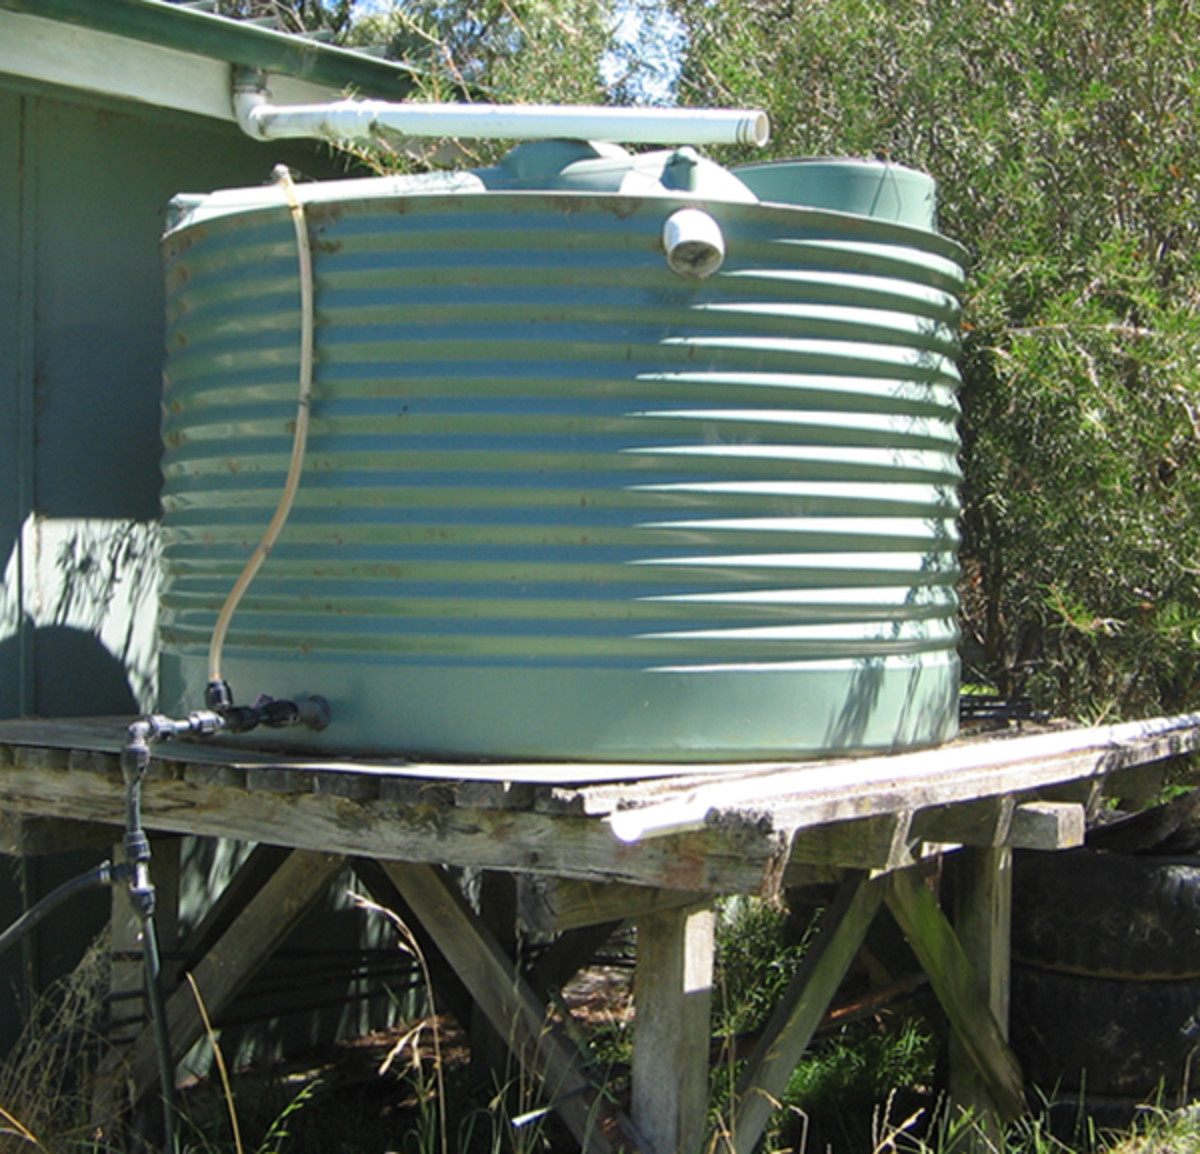 Water storage tank raised on a platform to allow more gravity pressure.